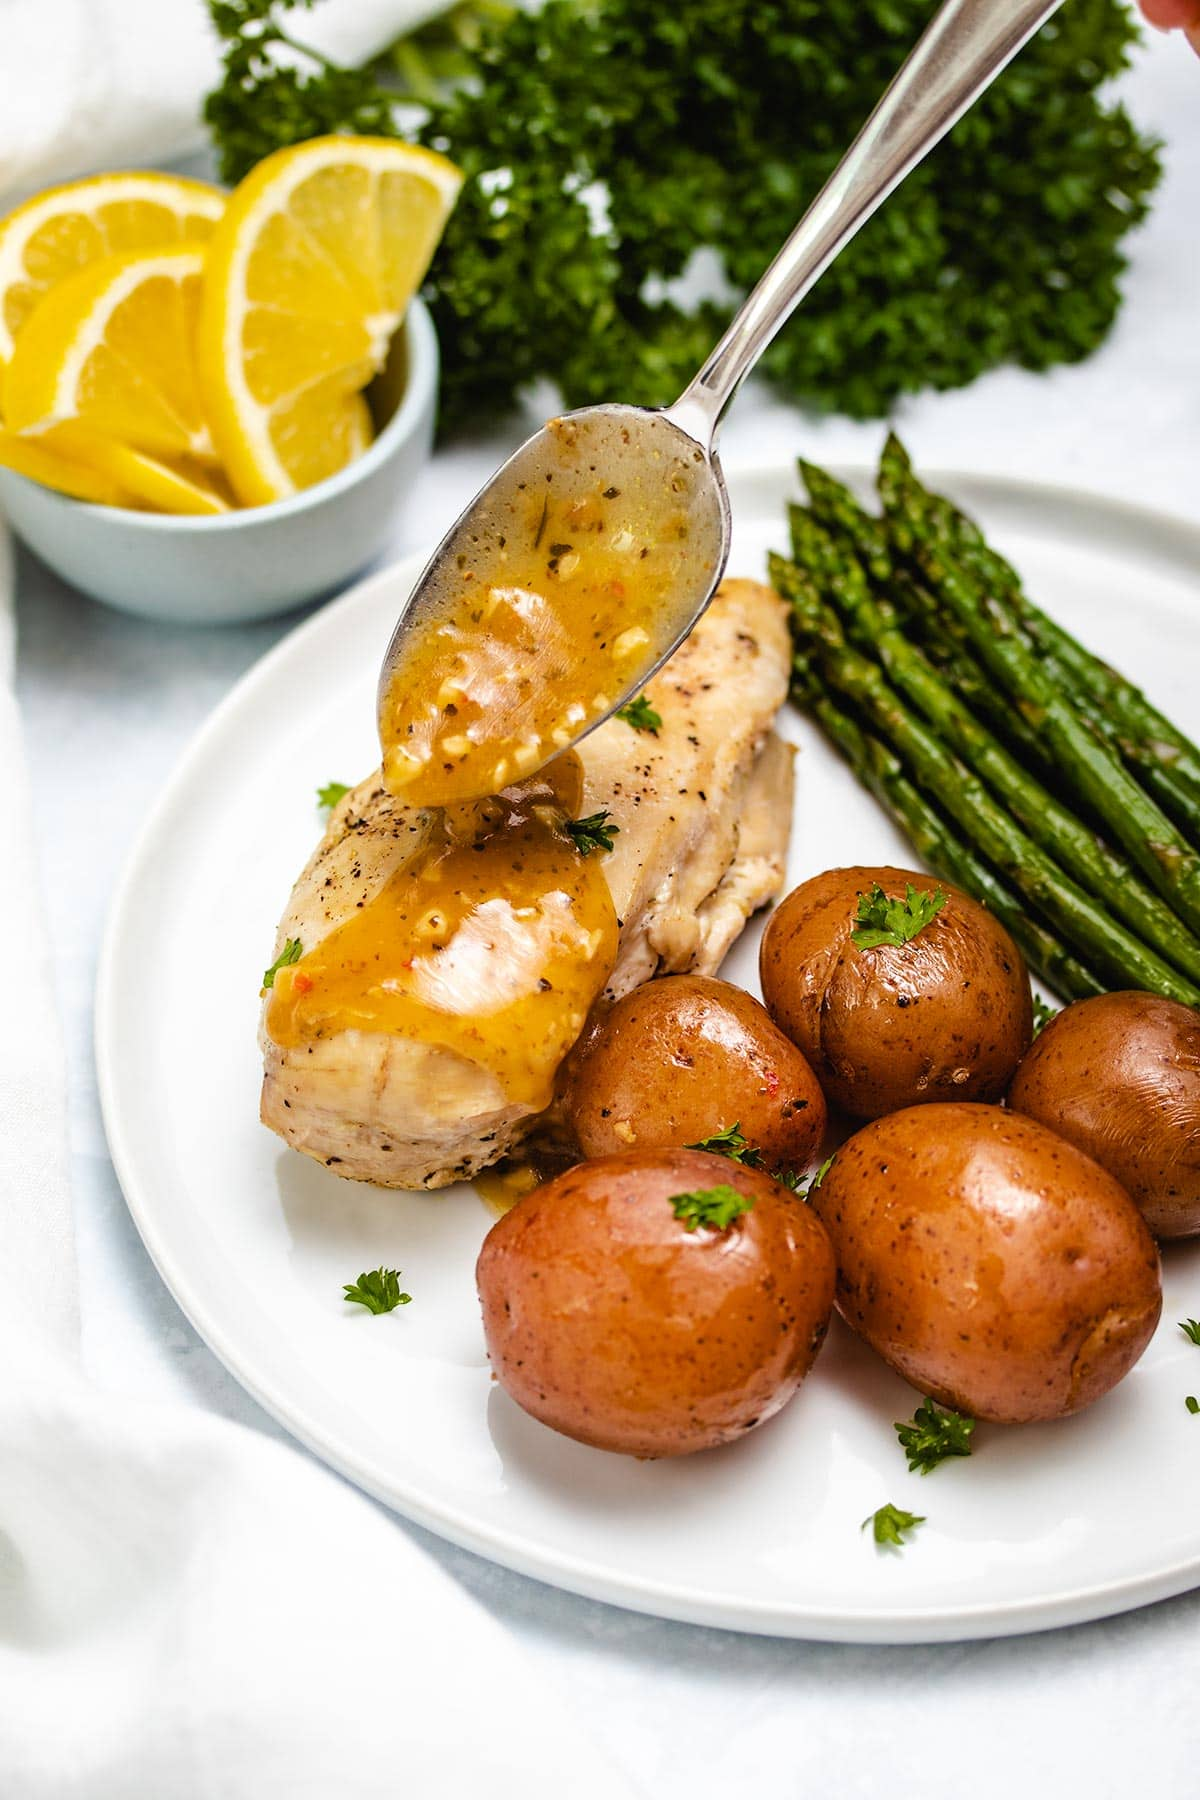 spooning lemon garlic sauce onto a chicken breast that is on a white plate with potatoes and asparagus